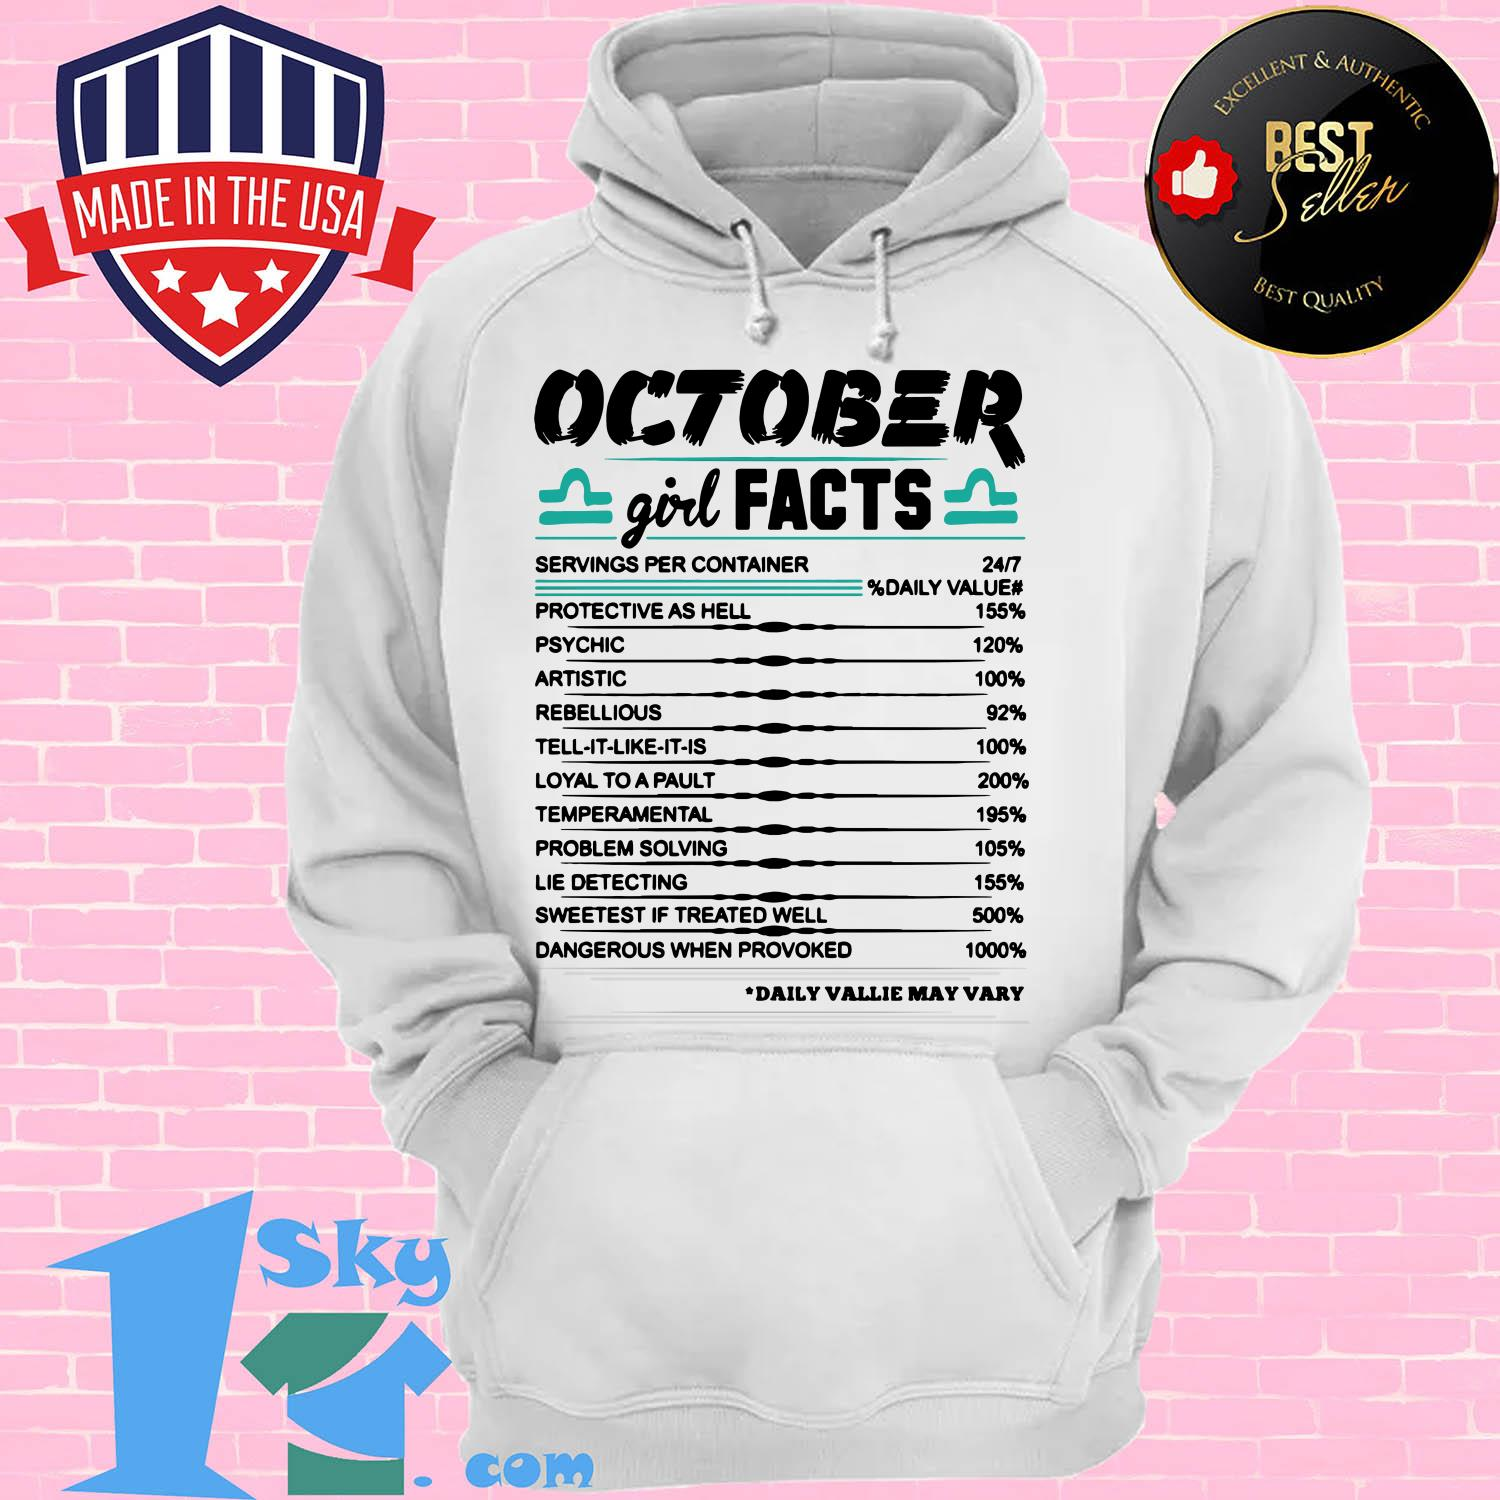 libra october girl facts serving per container protective as hell hoodie - Libra October girl facts serving per container protective as hell shirt